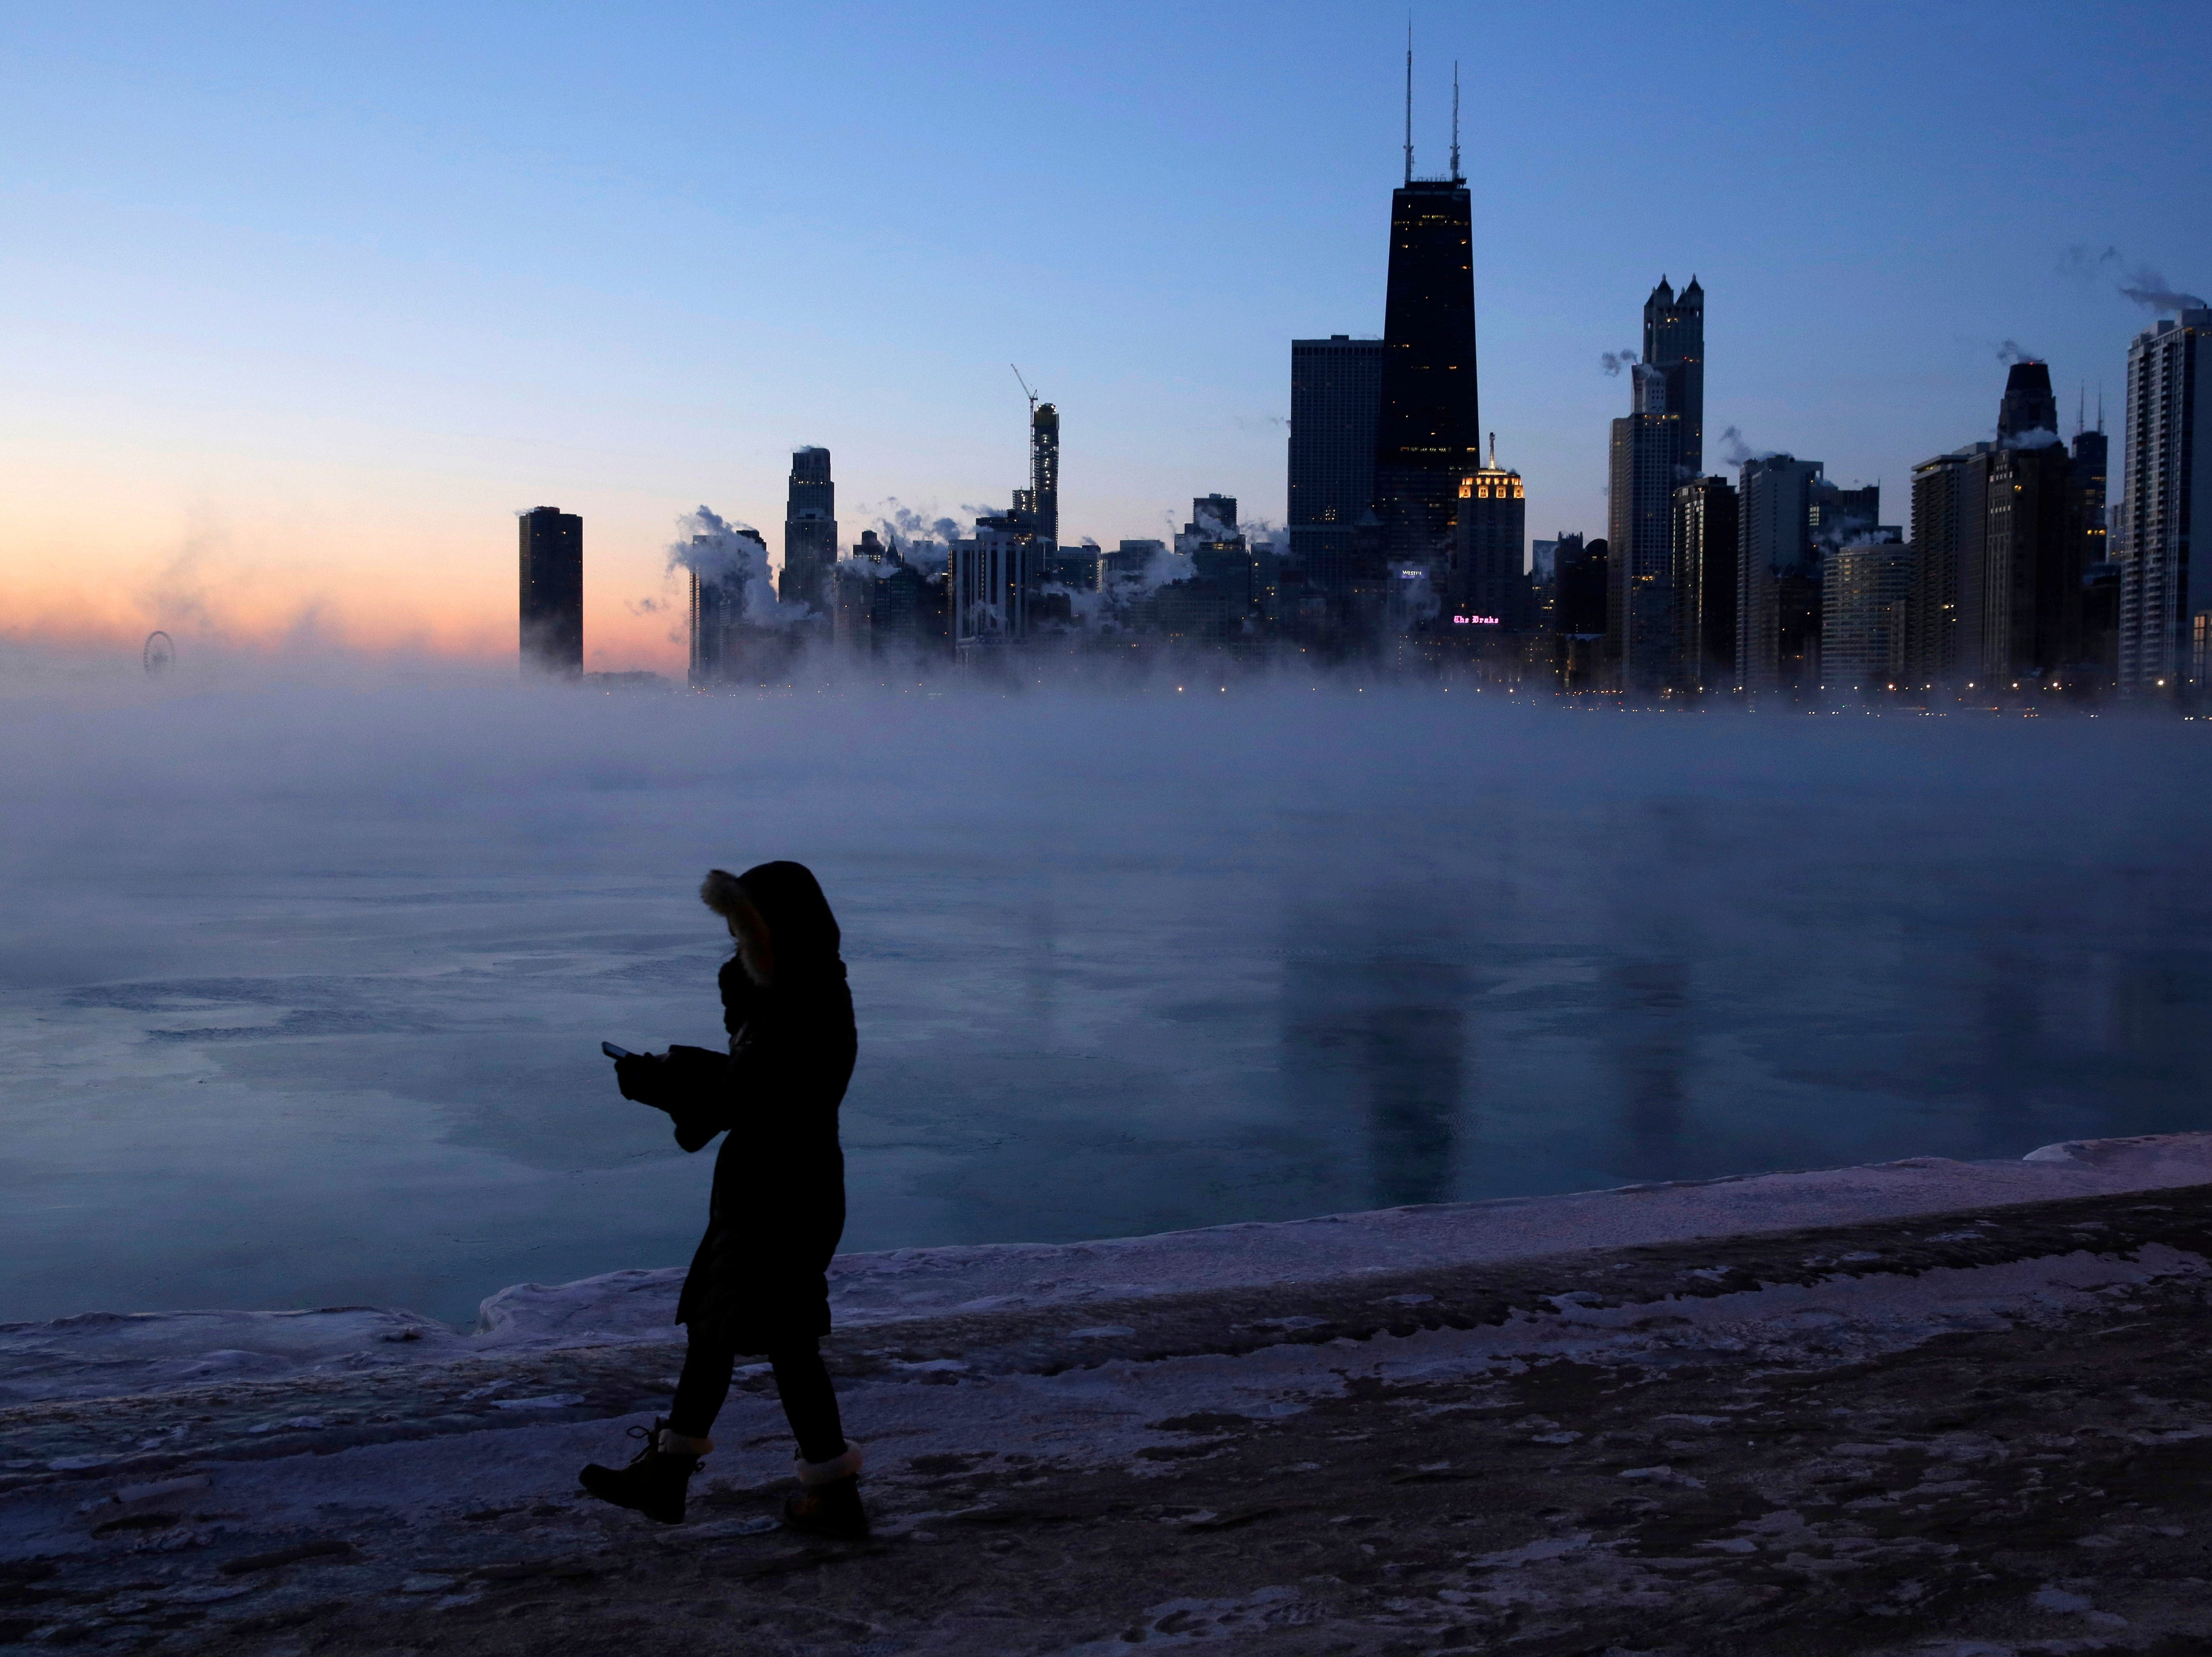 A person walks along the lakeshore, Wednesday, Jan. 30, 2019, in Chicago. A deadly arctic deep freeze enveloped the Midwest with record-breaking temperatures, triggering widespread closures of schools and businesses, and prompting the U.S. Postal Service to take the rare step of suspending mail delivery to a wide swath of the region.